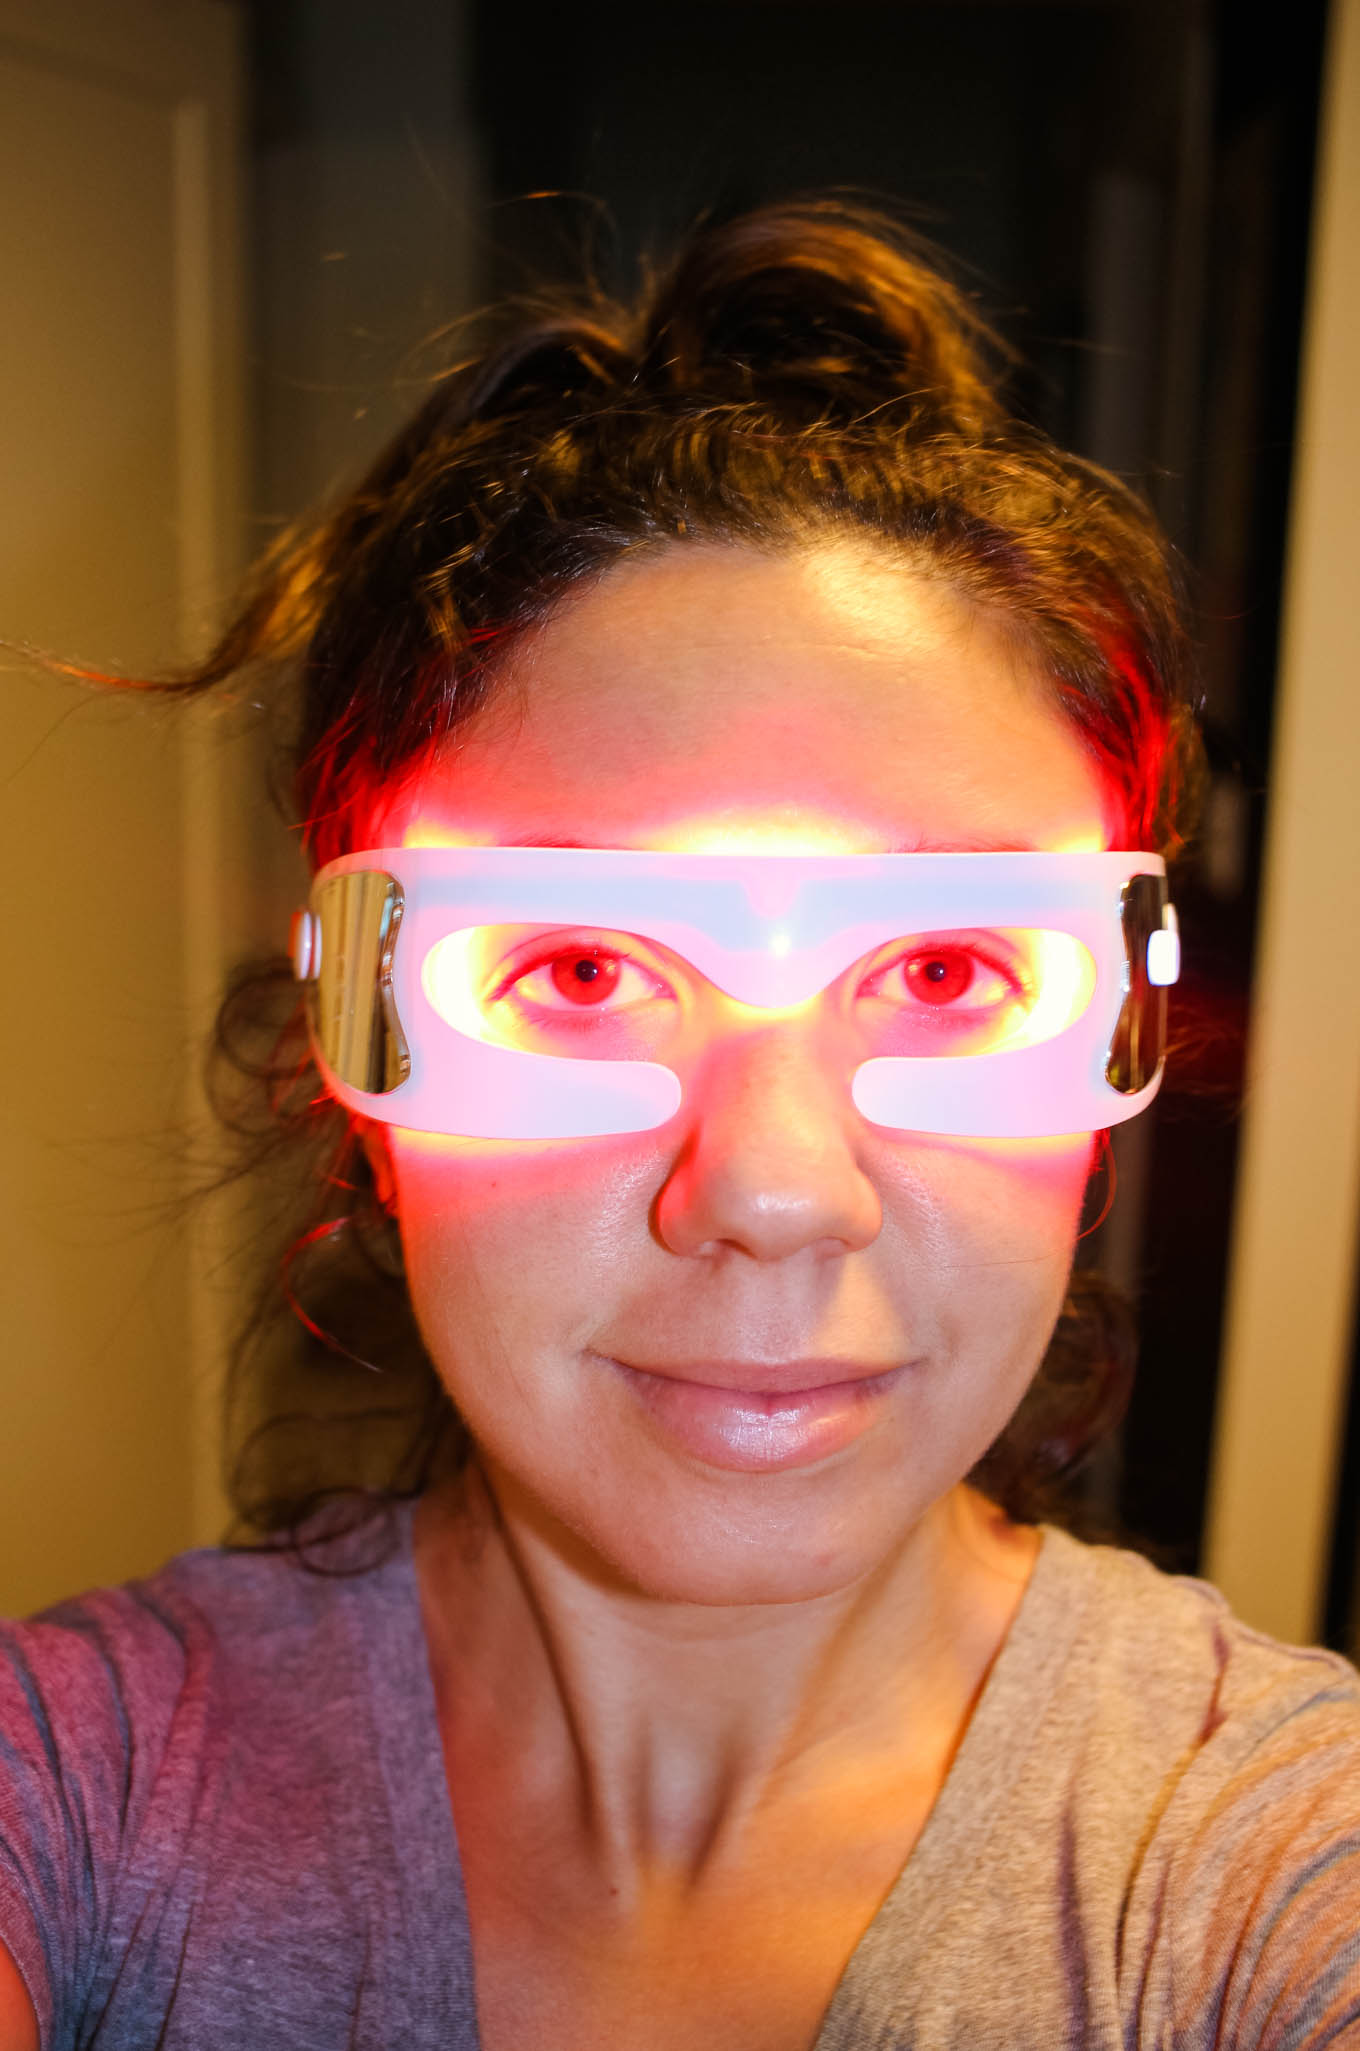 Lifestyle blogger Roxanne of Glass of Glam's review of Dr. Dennis Gross SpectraLite EyeCare Pro - Look & Feel Like A Superhero with the SpectraLite EyeCare Pro by popular DC beauty blogger Glass of Glam